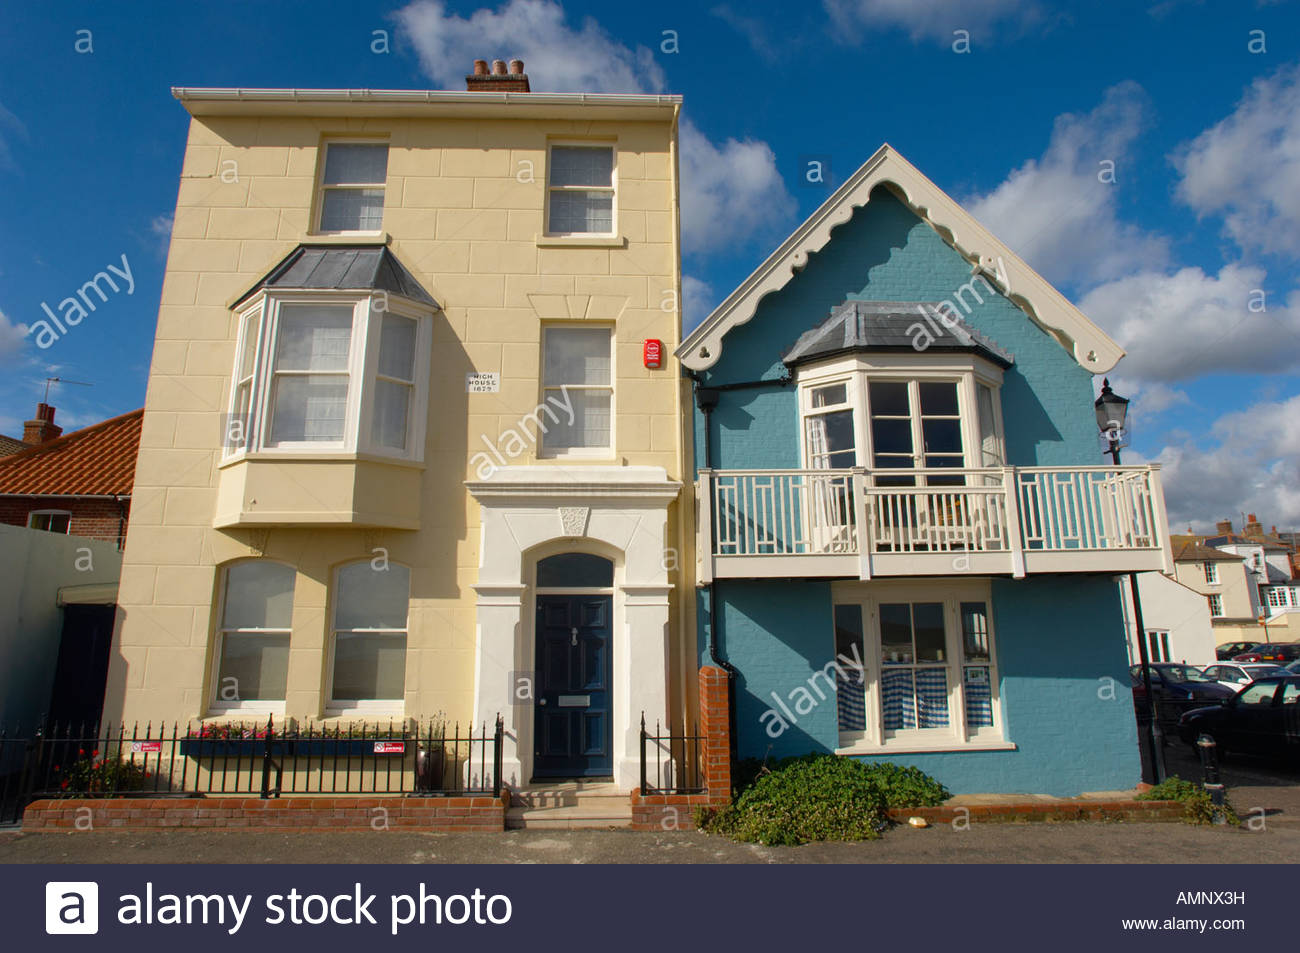 Sea front houses at Aldeburgh, East Anglia, Suffolk, England - Stock Image